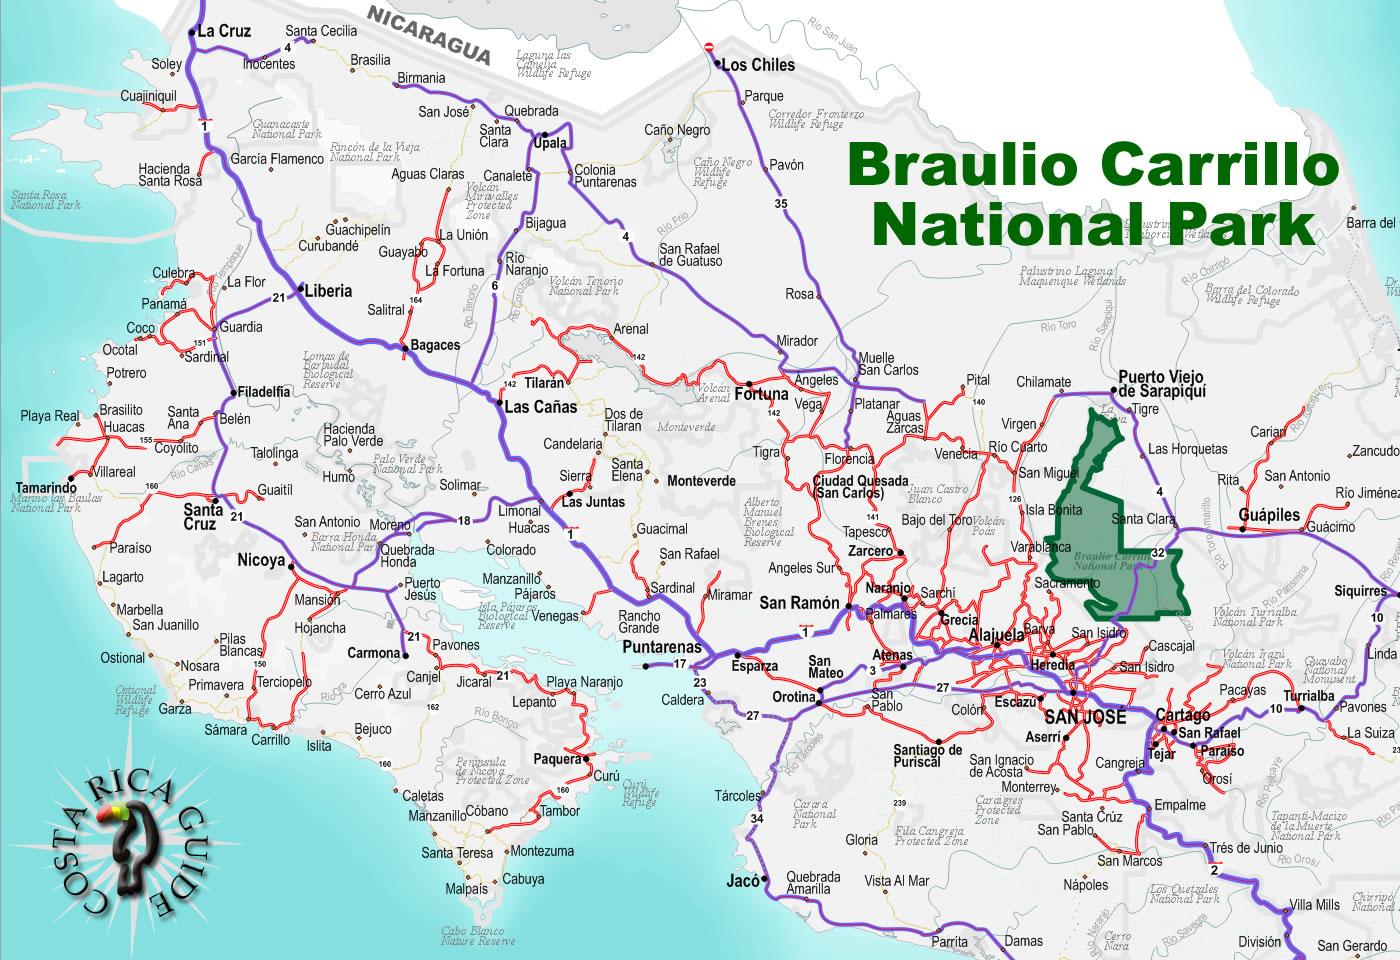 Braulio carrillo national park costa rica barulio carrillo national park location publicscrutiny Image collections